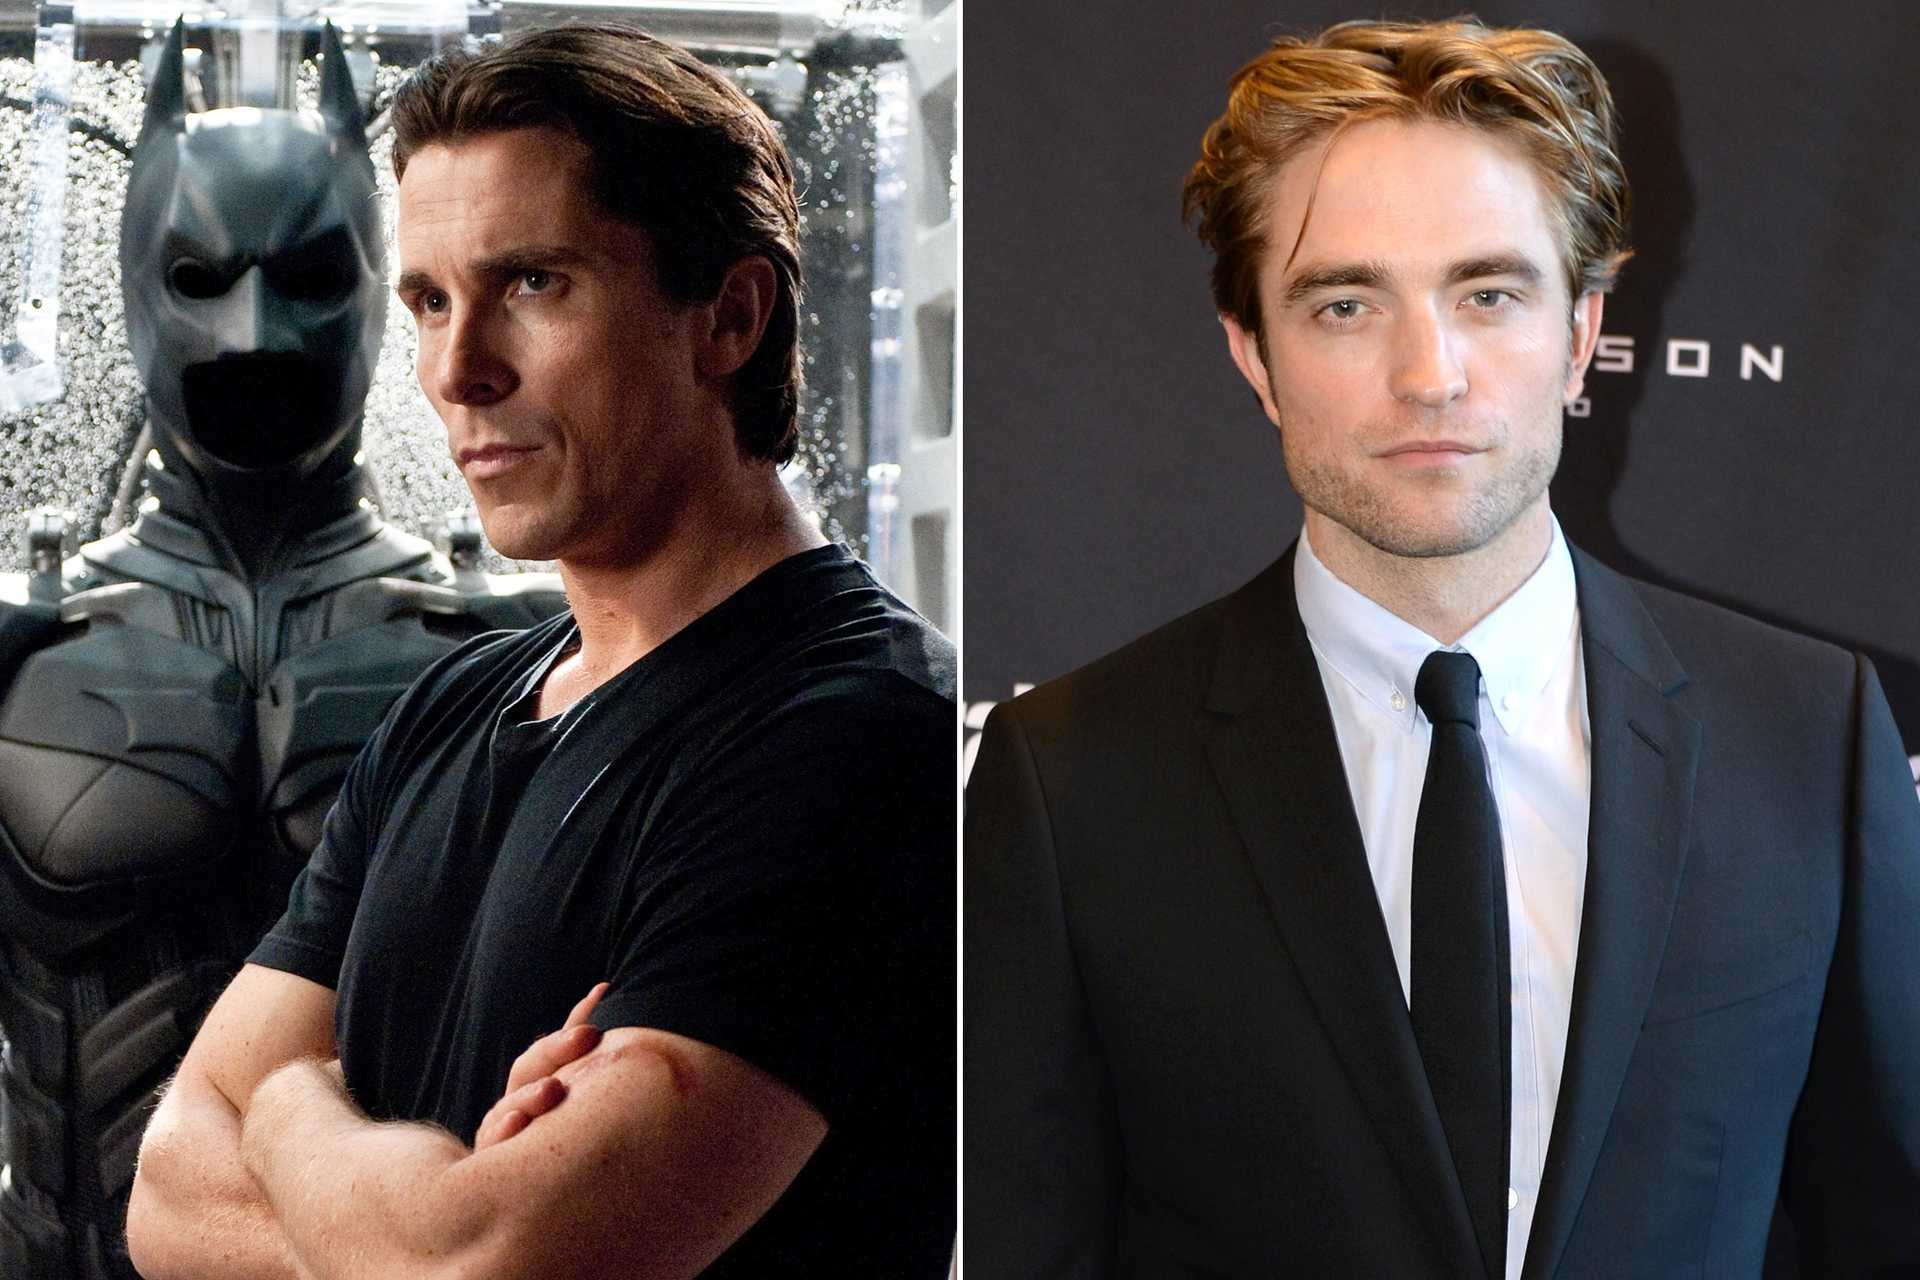 Christian Bale és Robert Pattinson